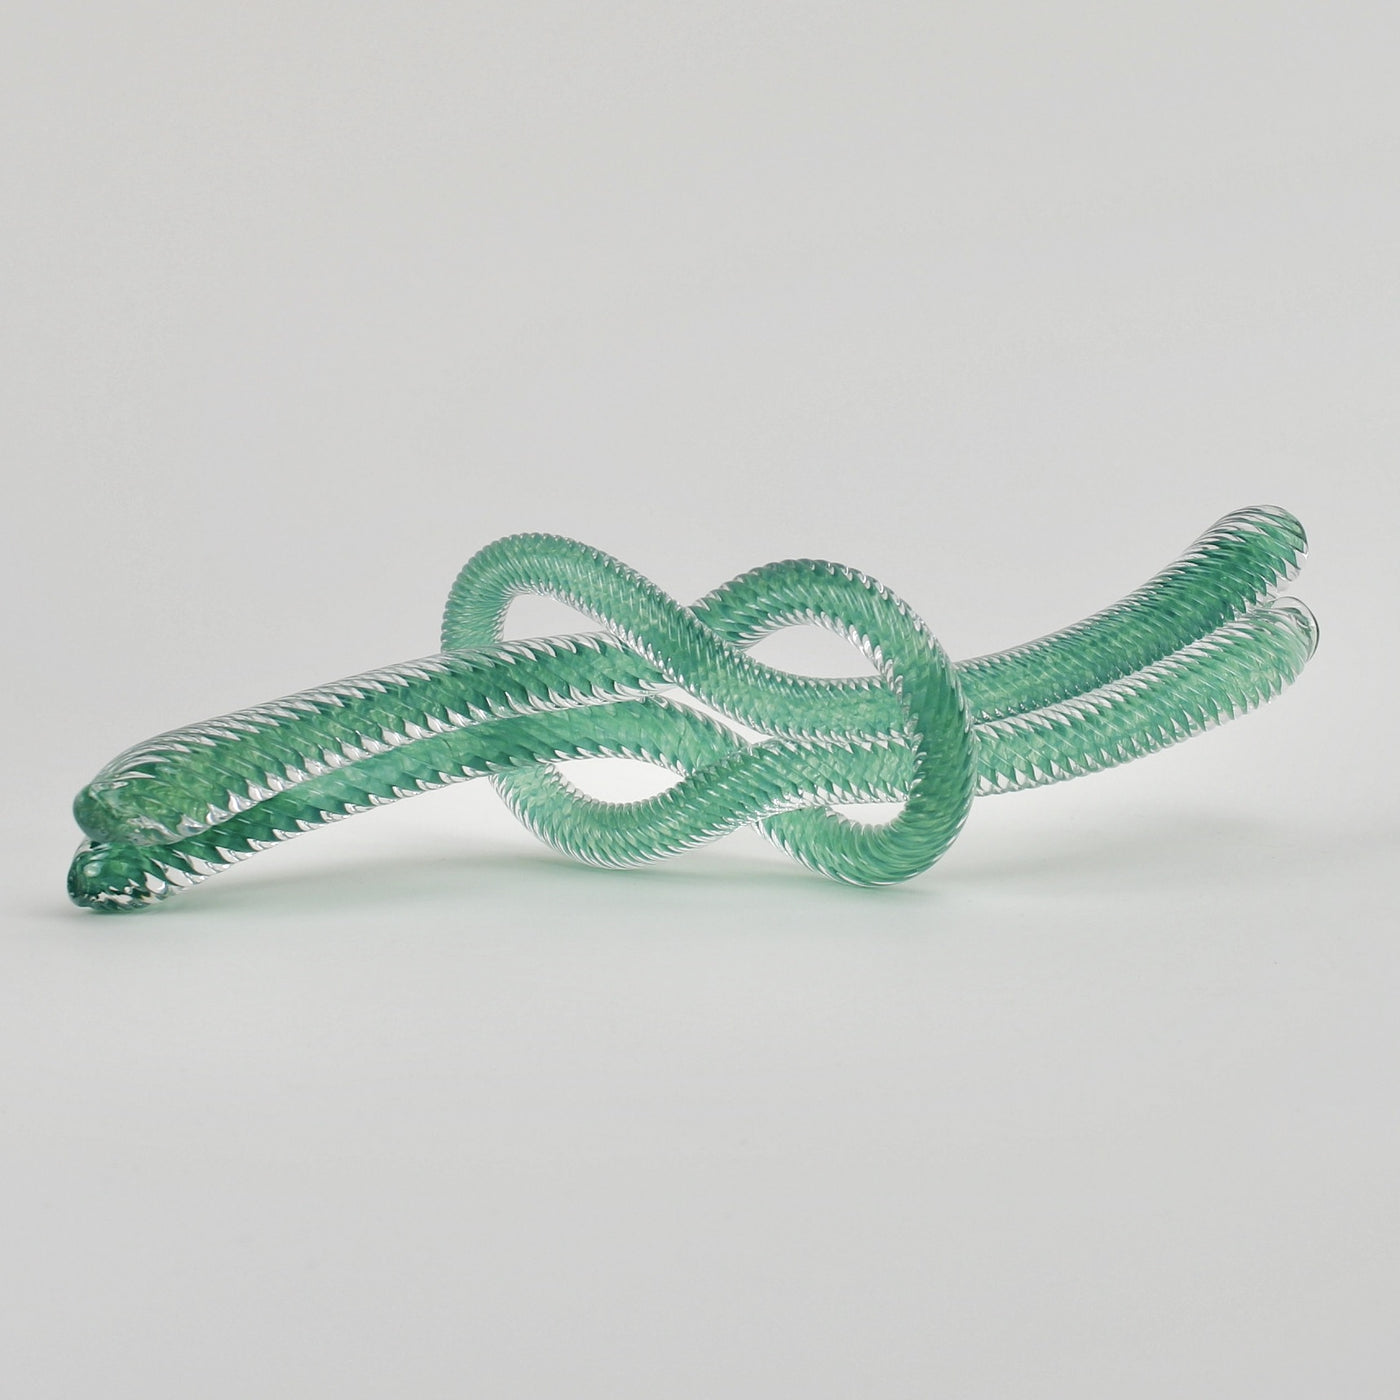 Glass knot - celadon